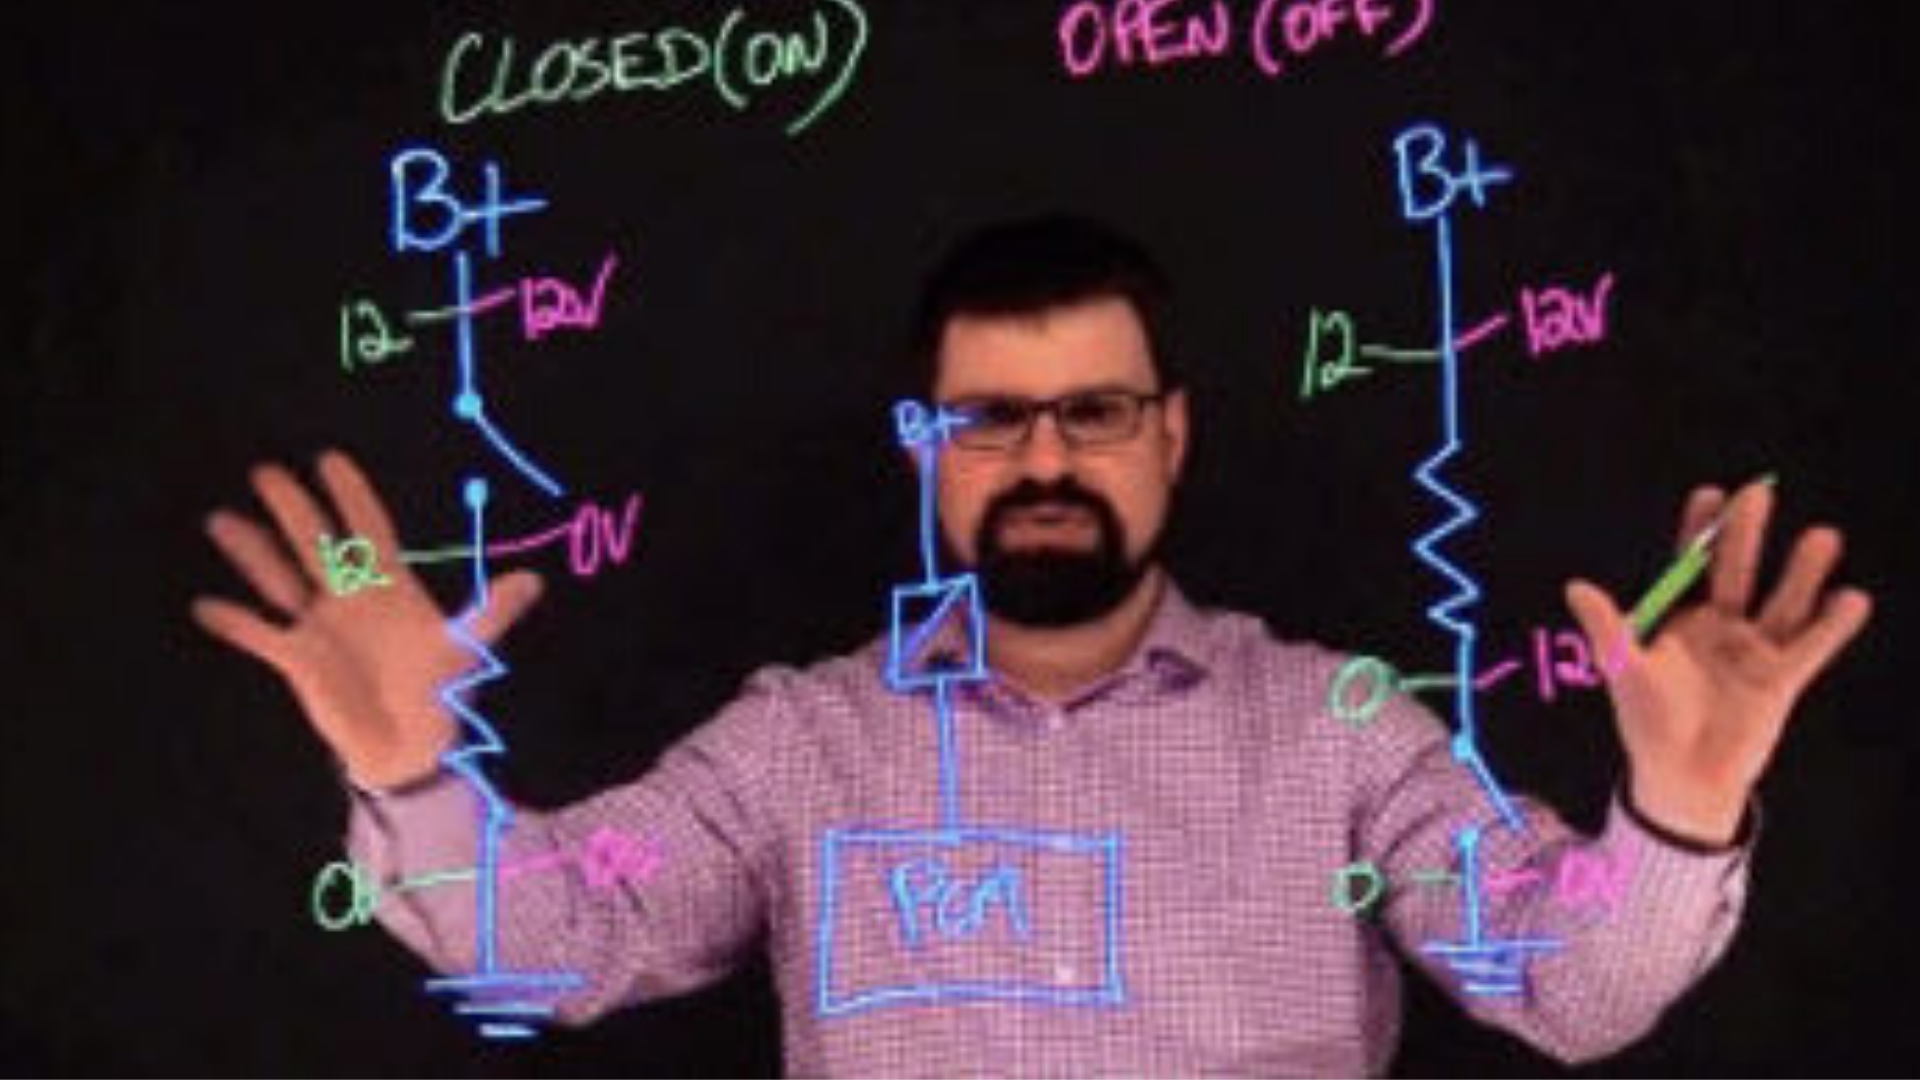 man using lightboard